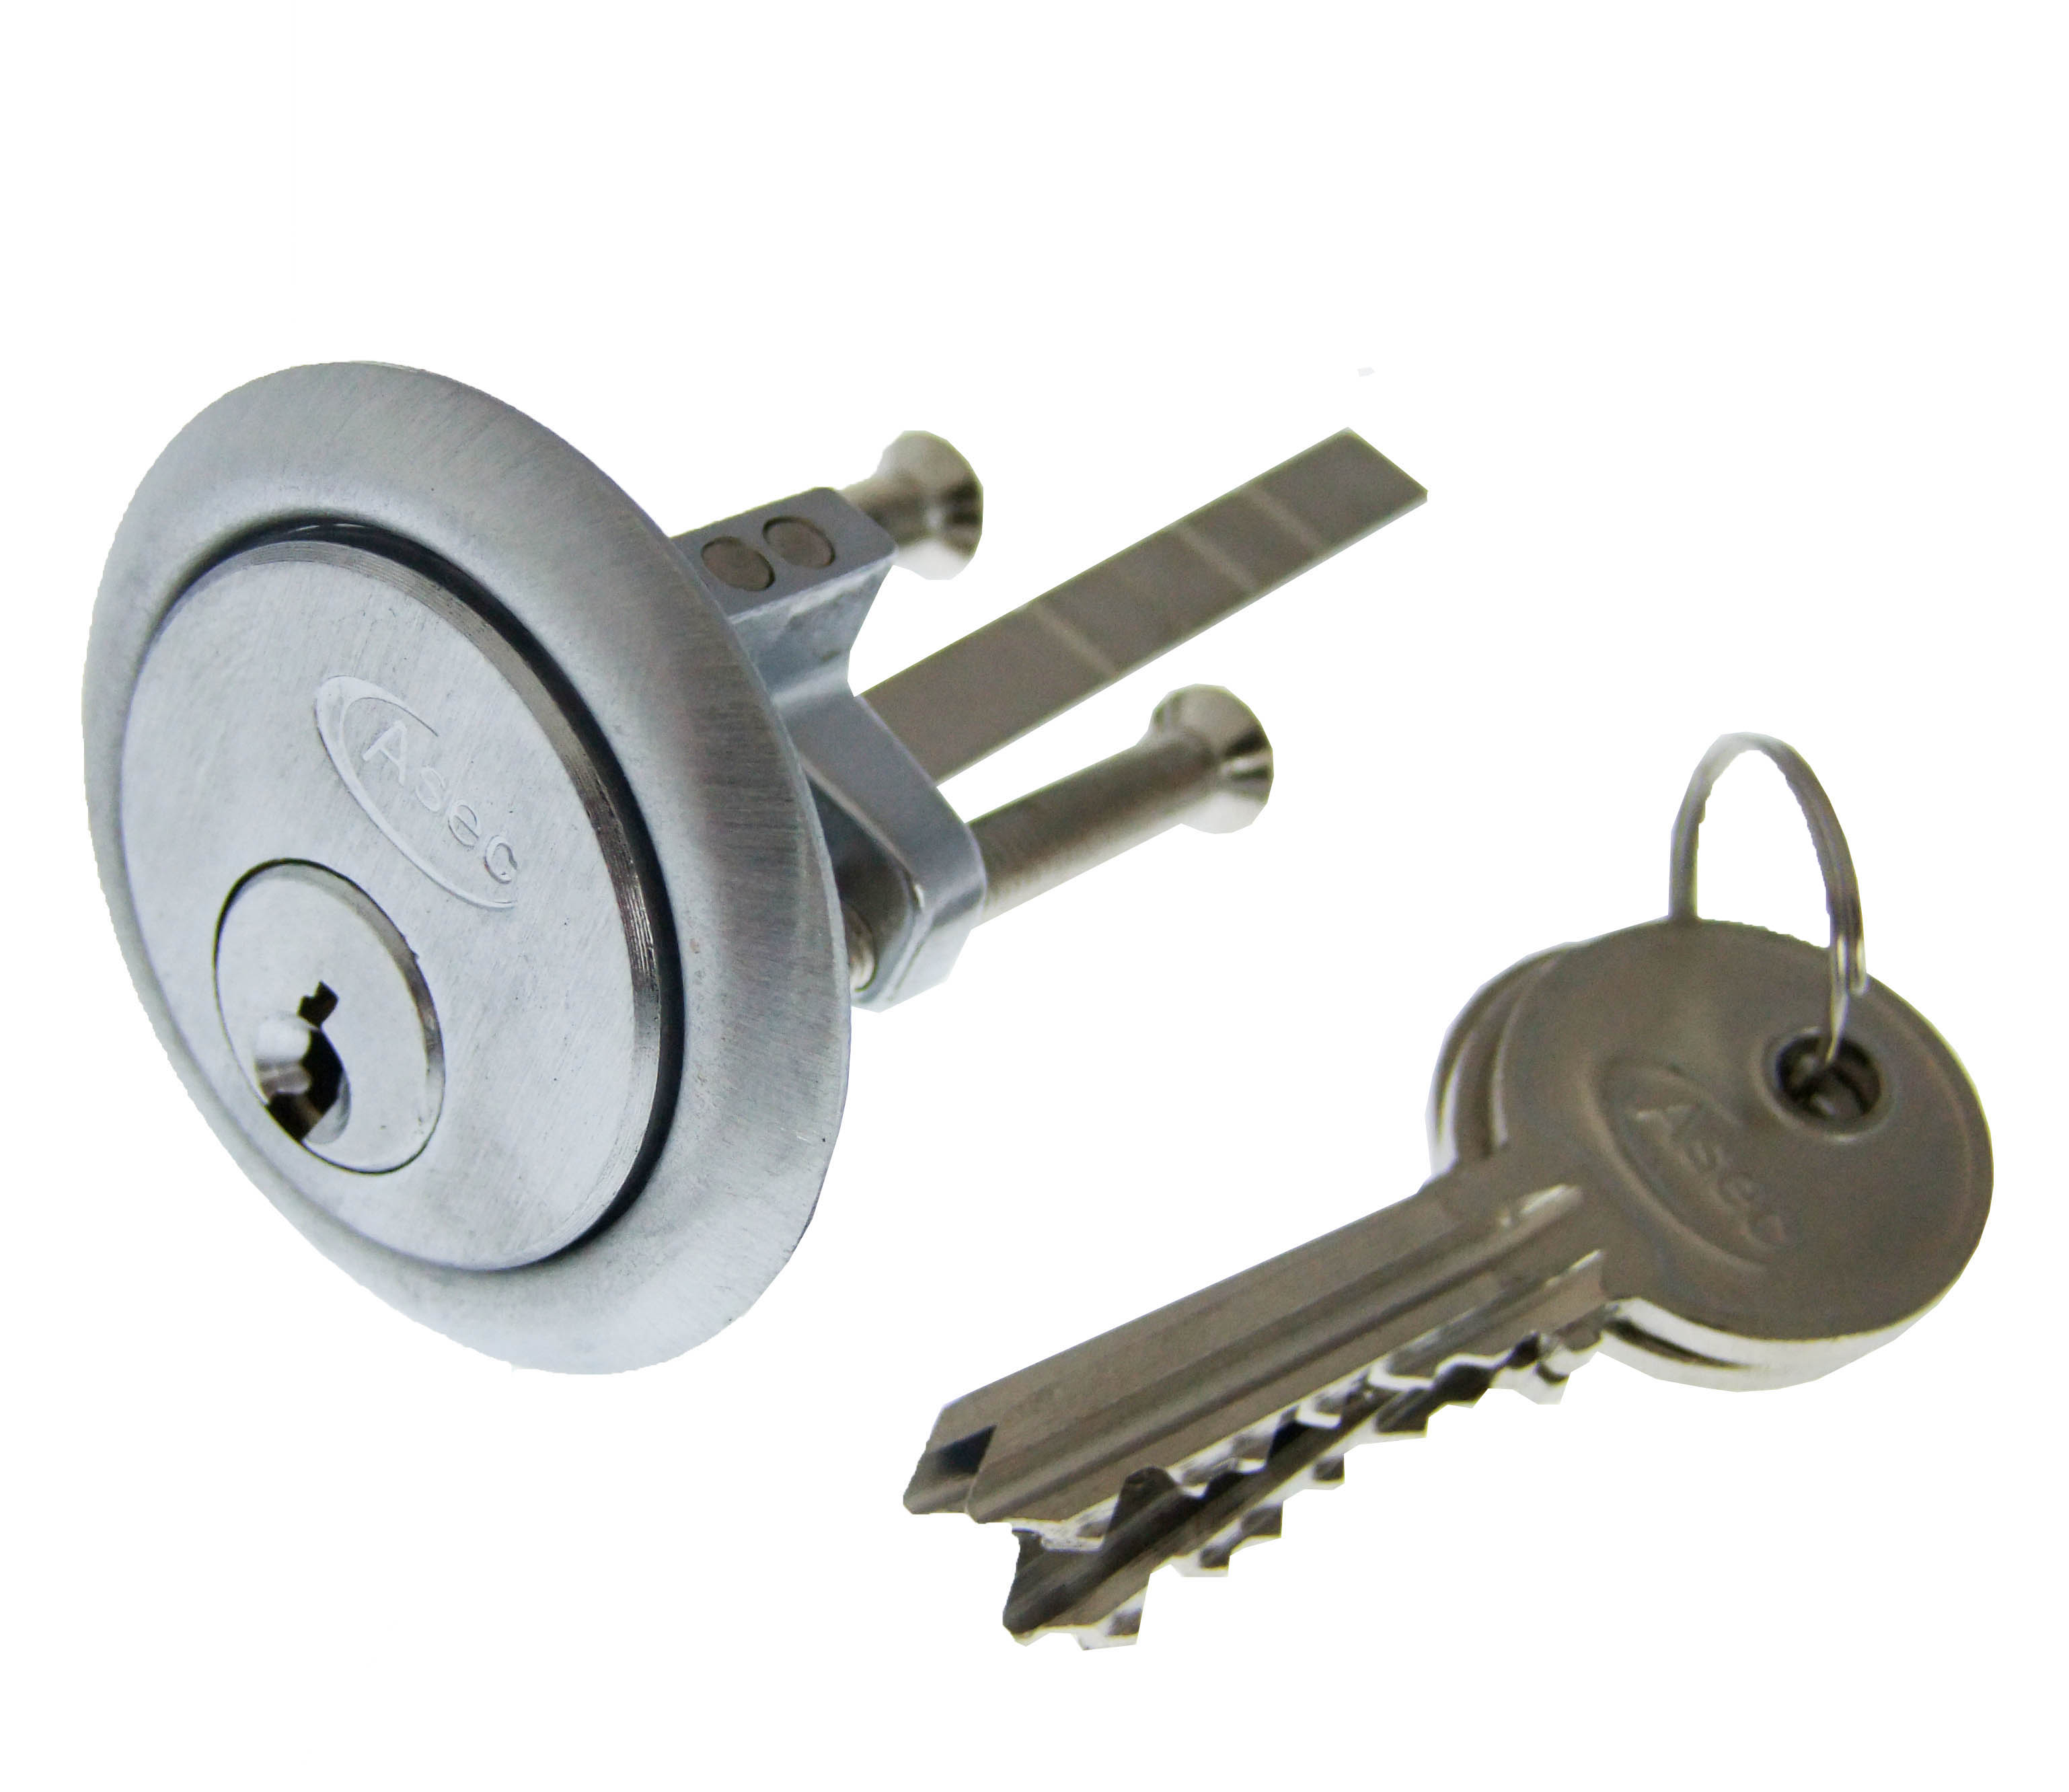 Lock Pick Key >> What Can Our Locksmiths Repair and Replace?